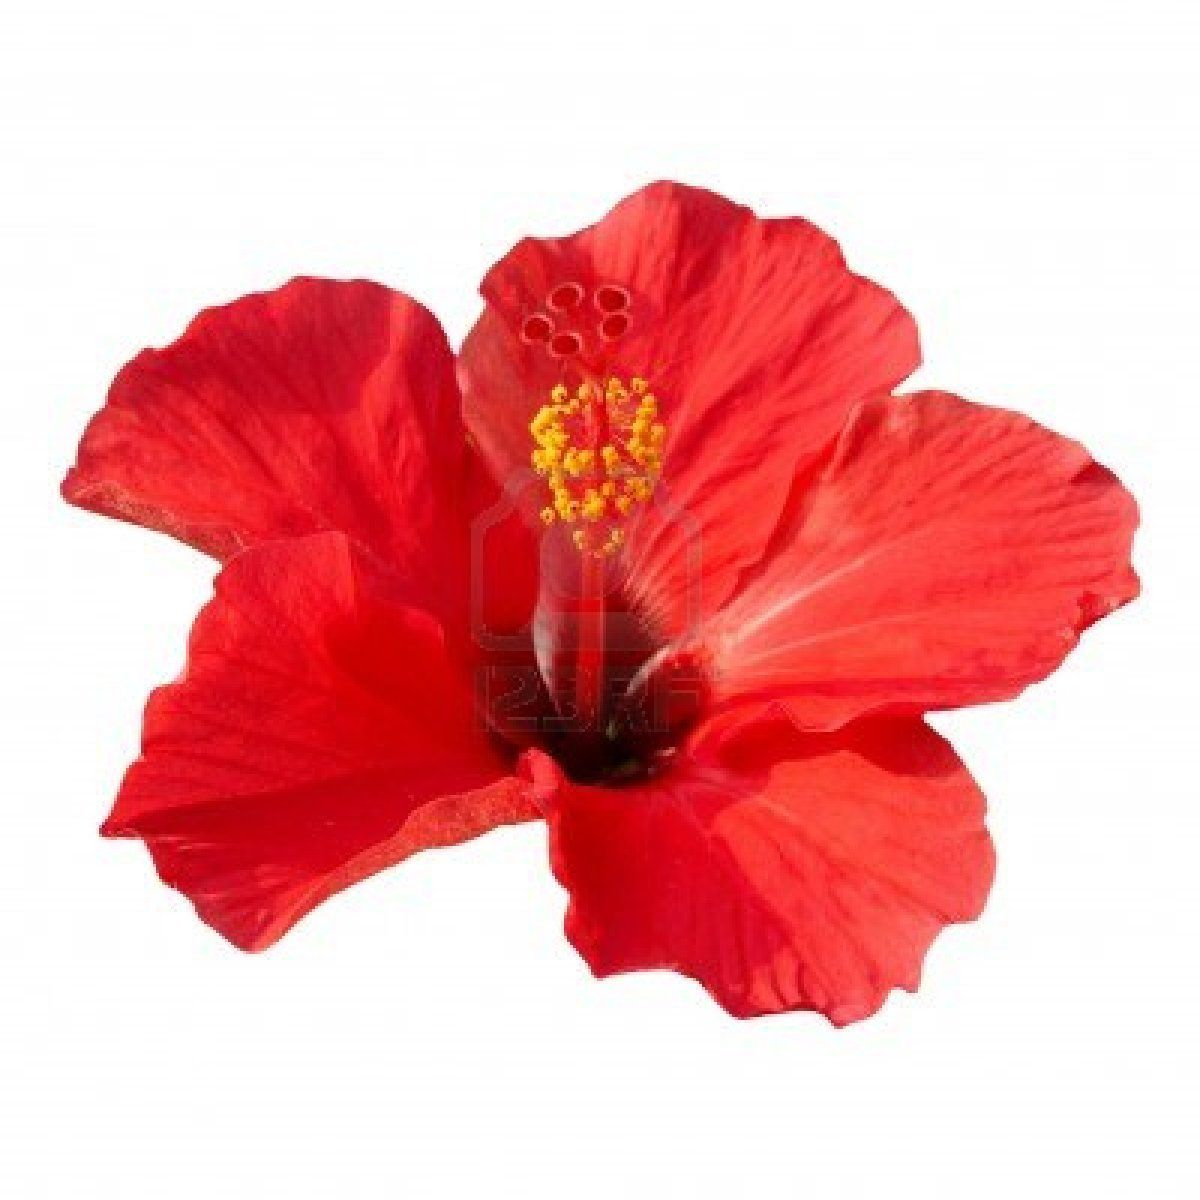 Red Flower Hibiscus Rosa Sinensis Isolated On White Hibiscus Rosa Sinensis Flowers Red Flowers